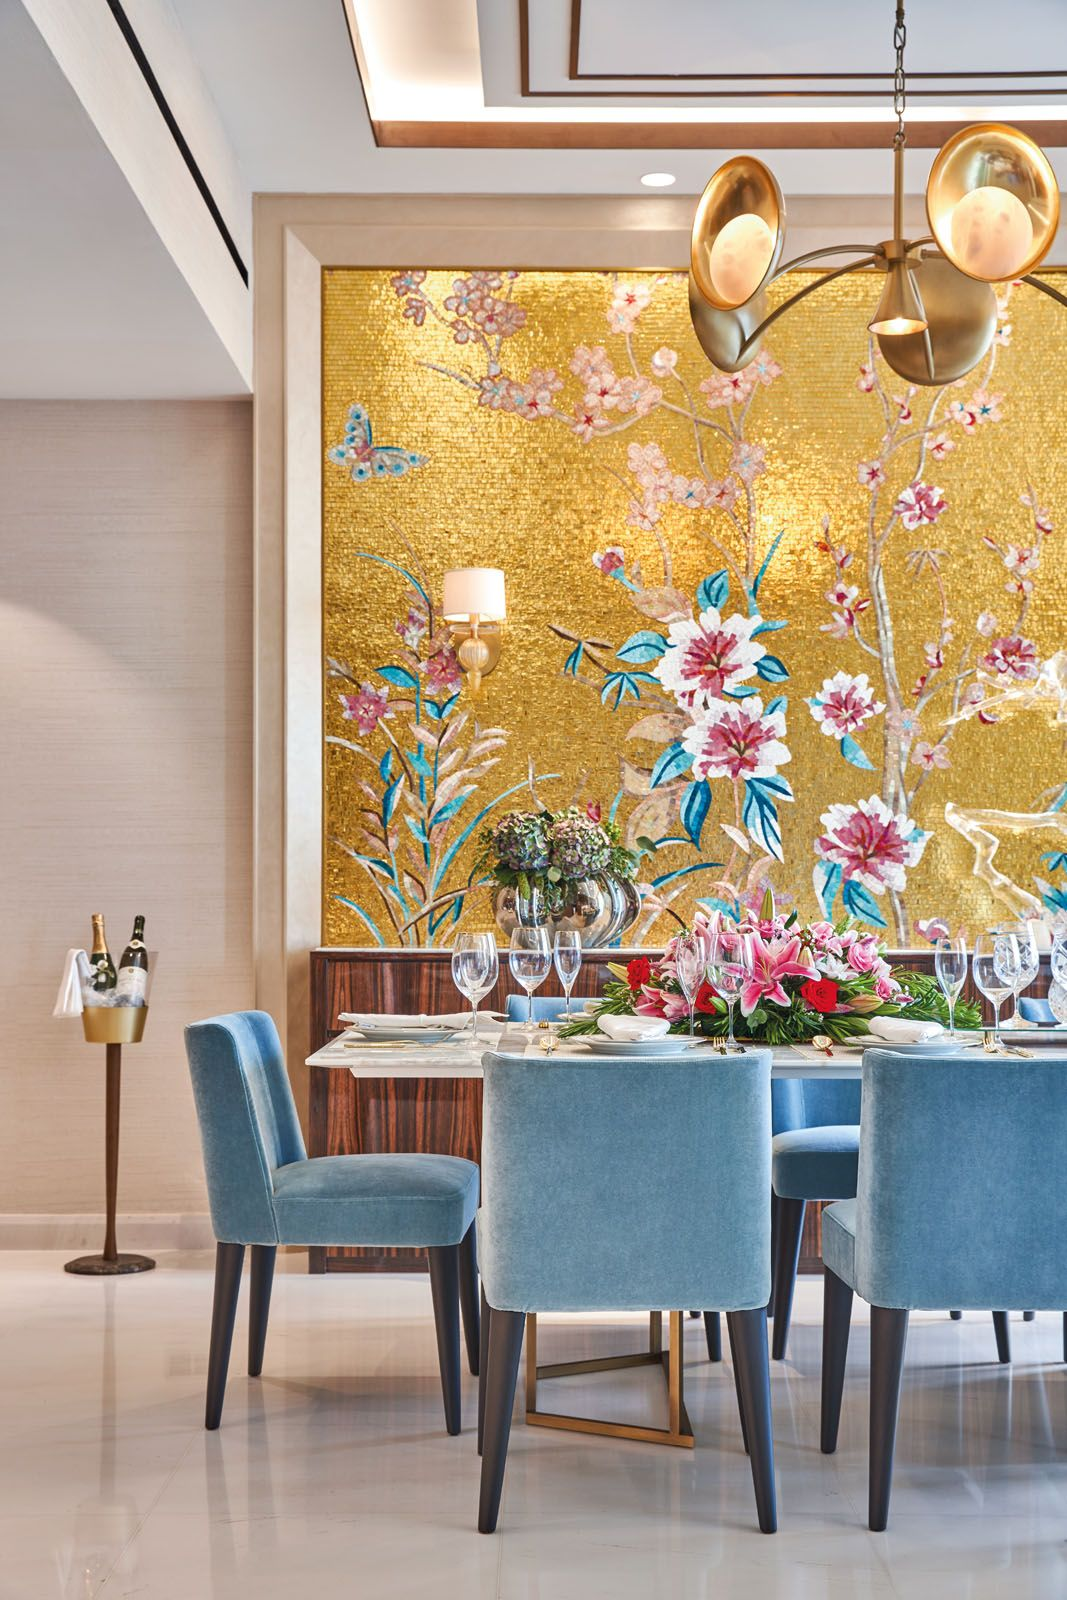 feng shui interior design 2019 pictures